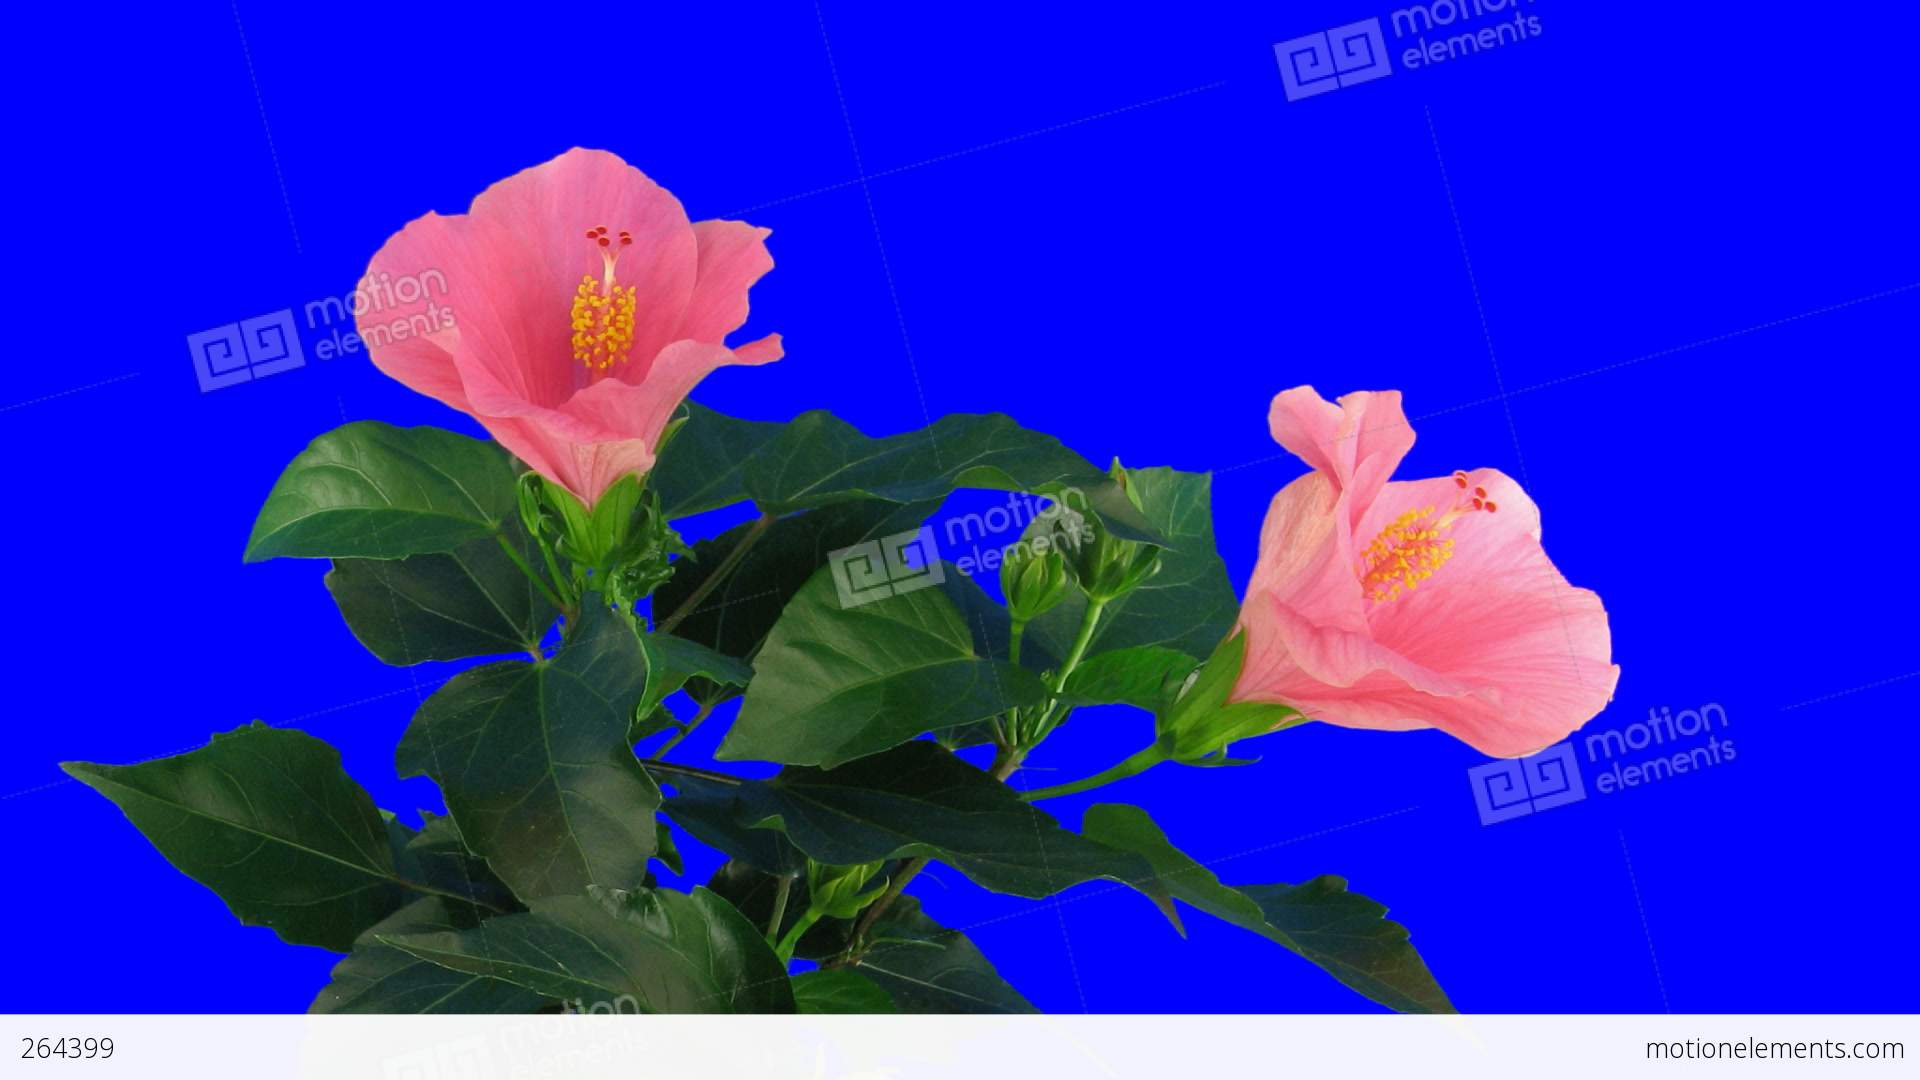 Time lapse of pink hibiscus flower opening 2ck blue chroma key stock time lapse of pink hibiscus flower opening 2ck blue stock video footage izmirmasajfo Images